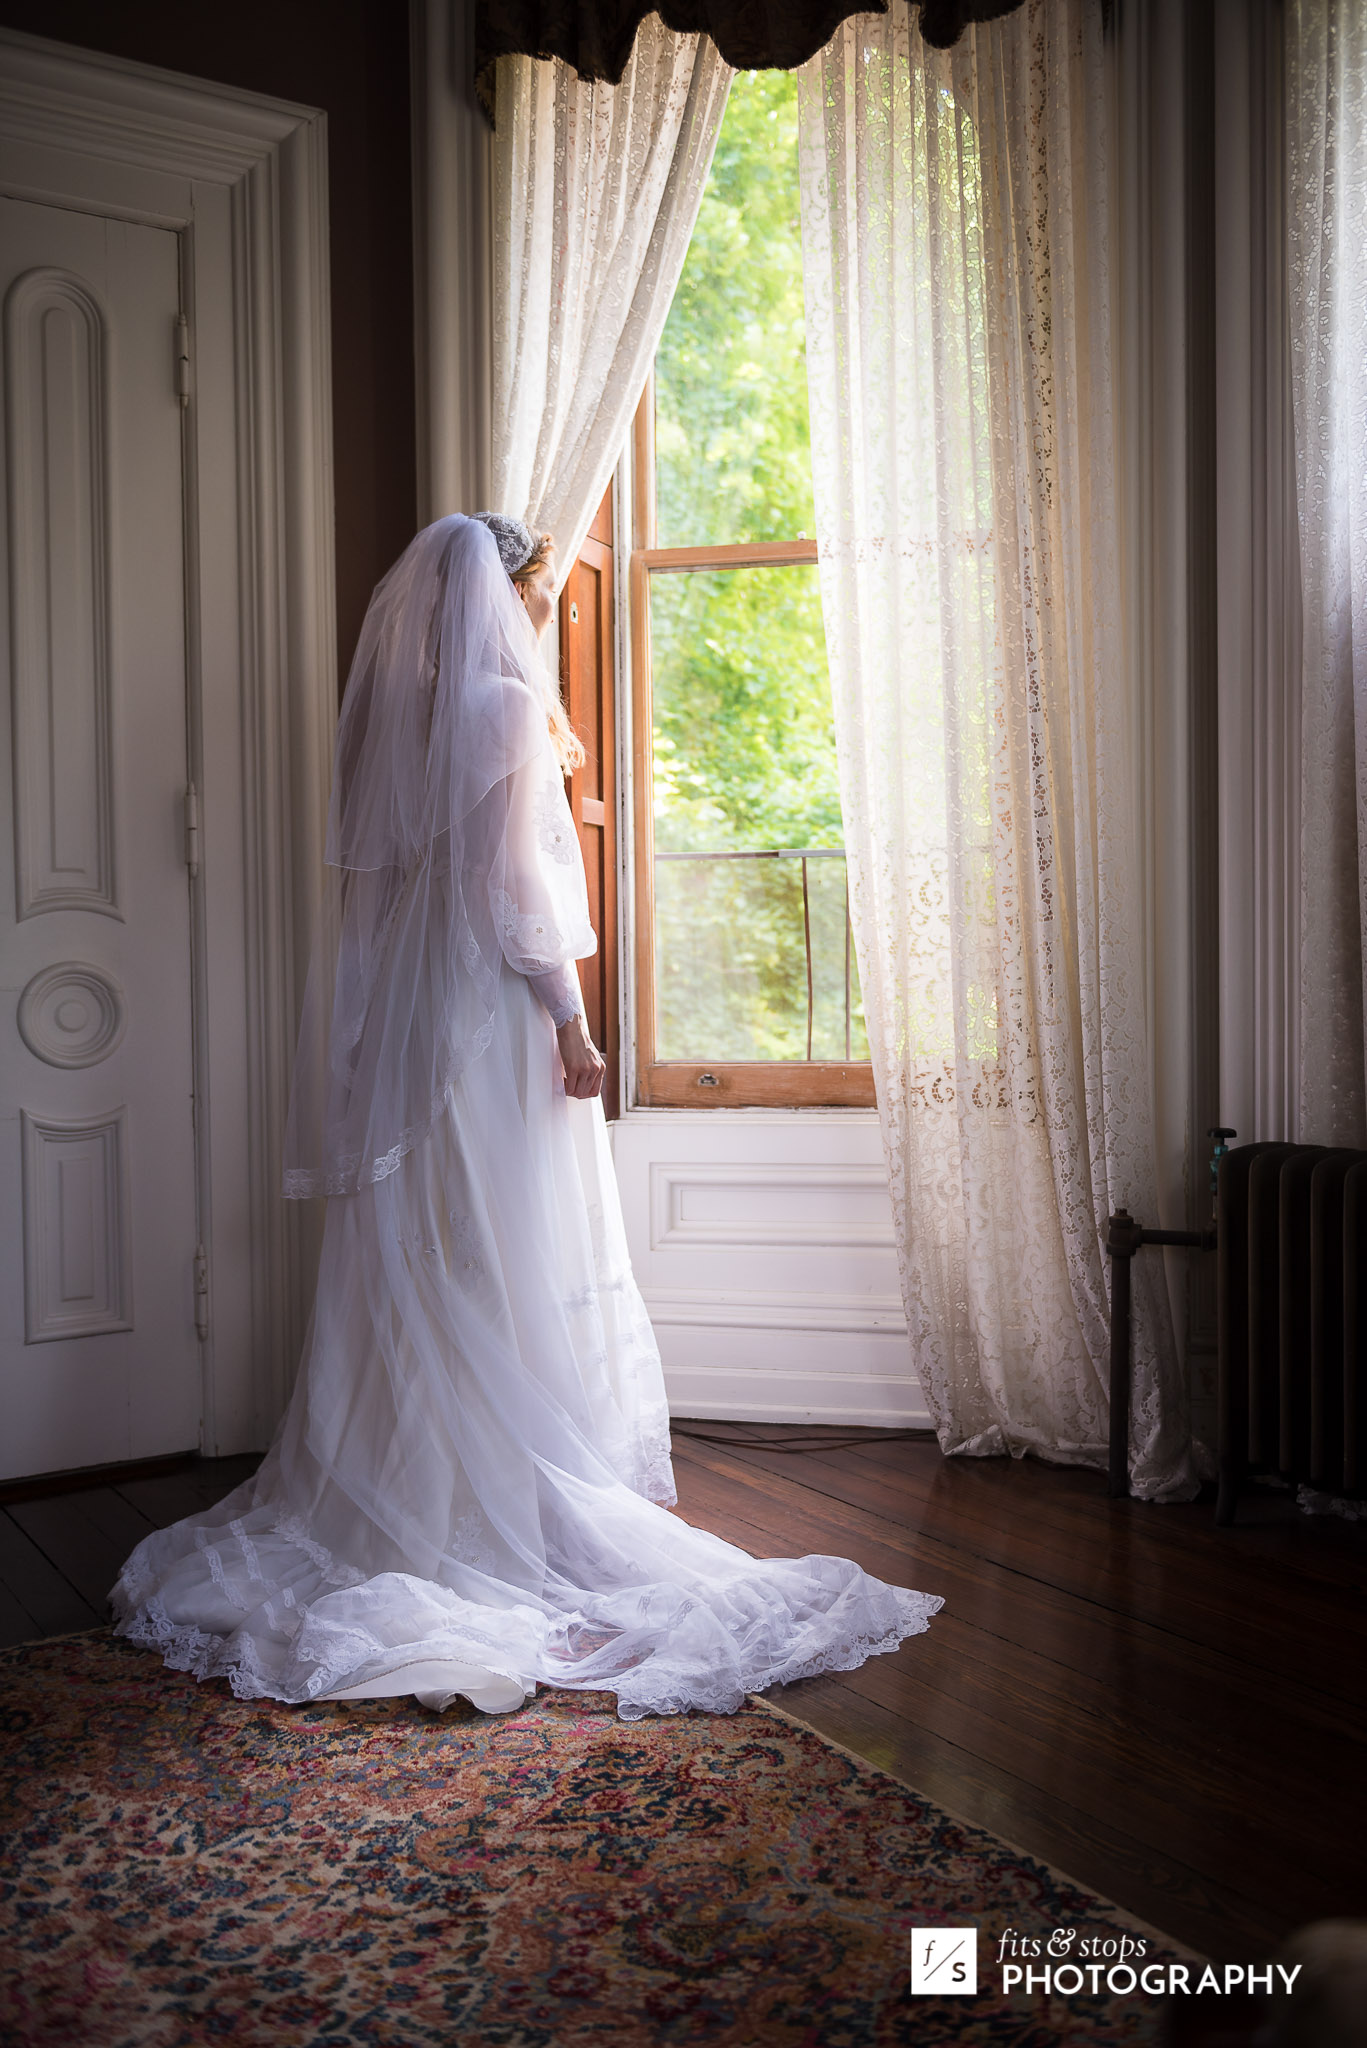 A bride stands near the window light into her bedroom.